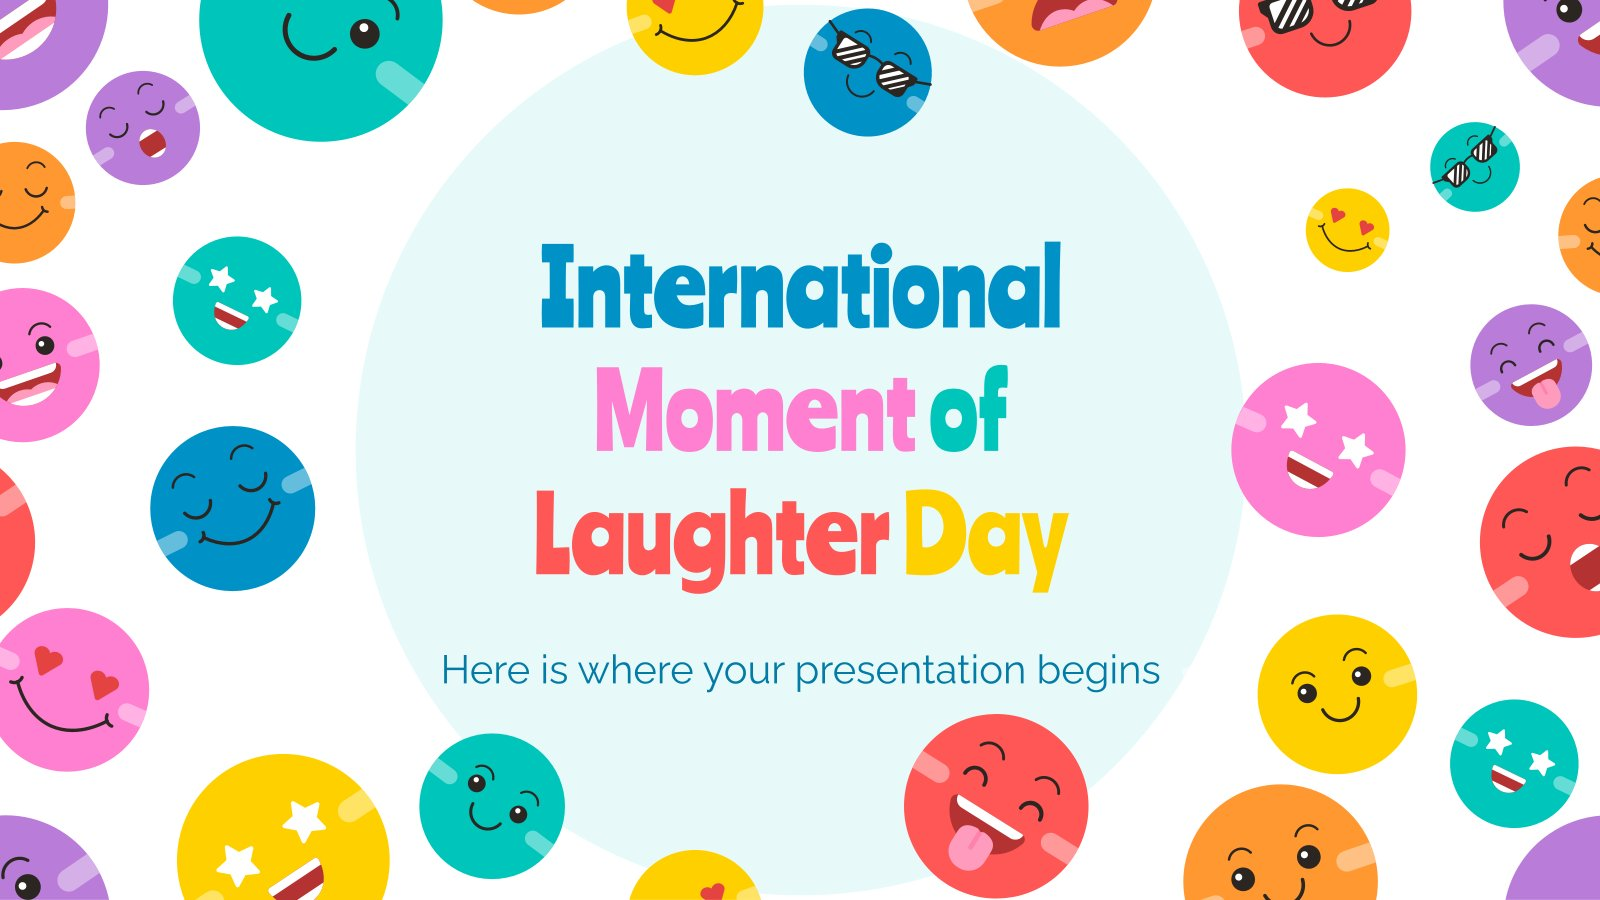 International Moment of Laughter Day presentation template